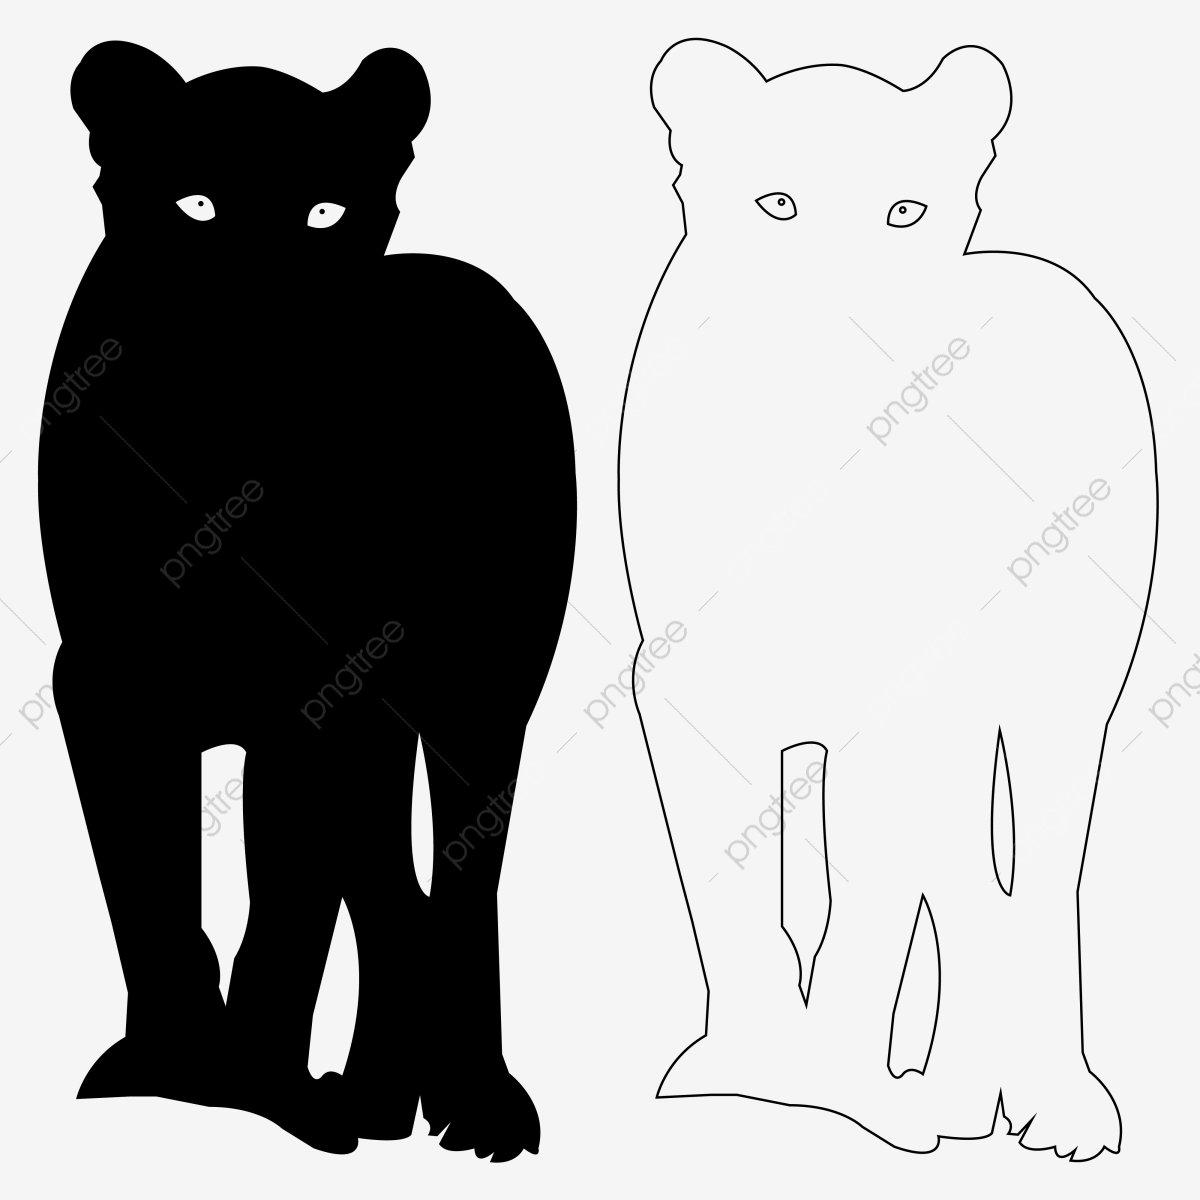 Lion Silhouette Outline Vector Icon Set Panther Clipart Icon Lion Png And Vector With Transparent Background For Free Download Over 62,995 lion pictures to choose from, with no signup needed. https pngtree com freepng lion silhouette outline vector icon set 4005089 html